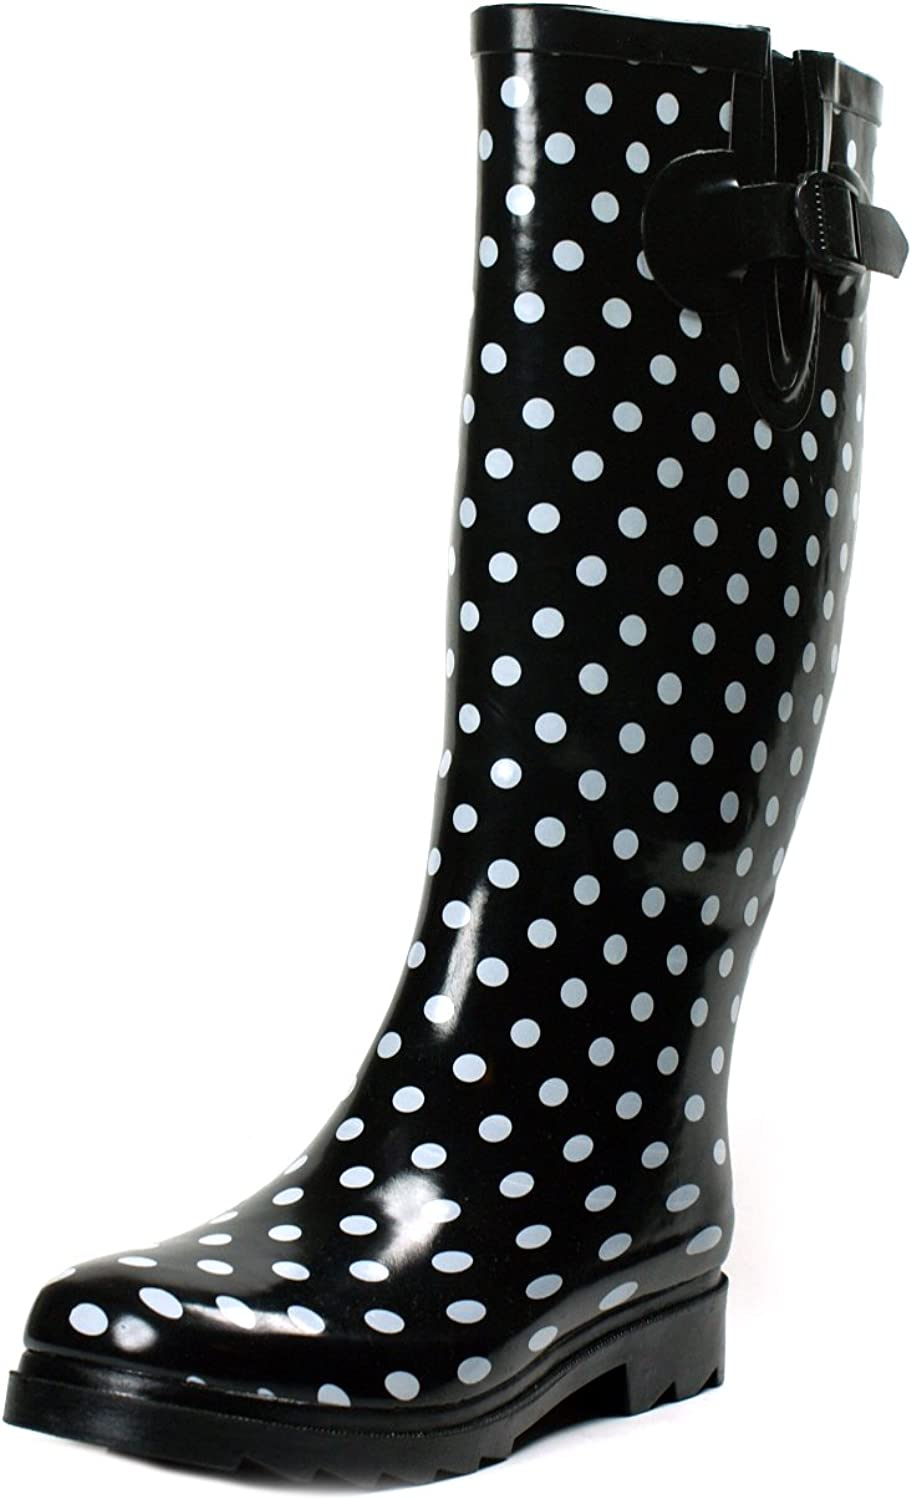 Ownshoe Women Rubber Polka Dots Mid Calf Wellies color Dots Rainboots